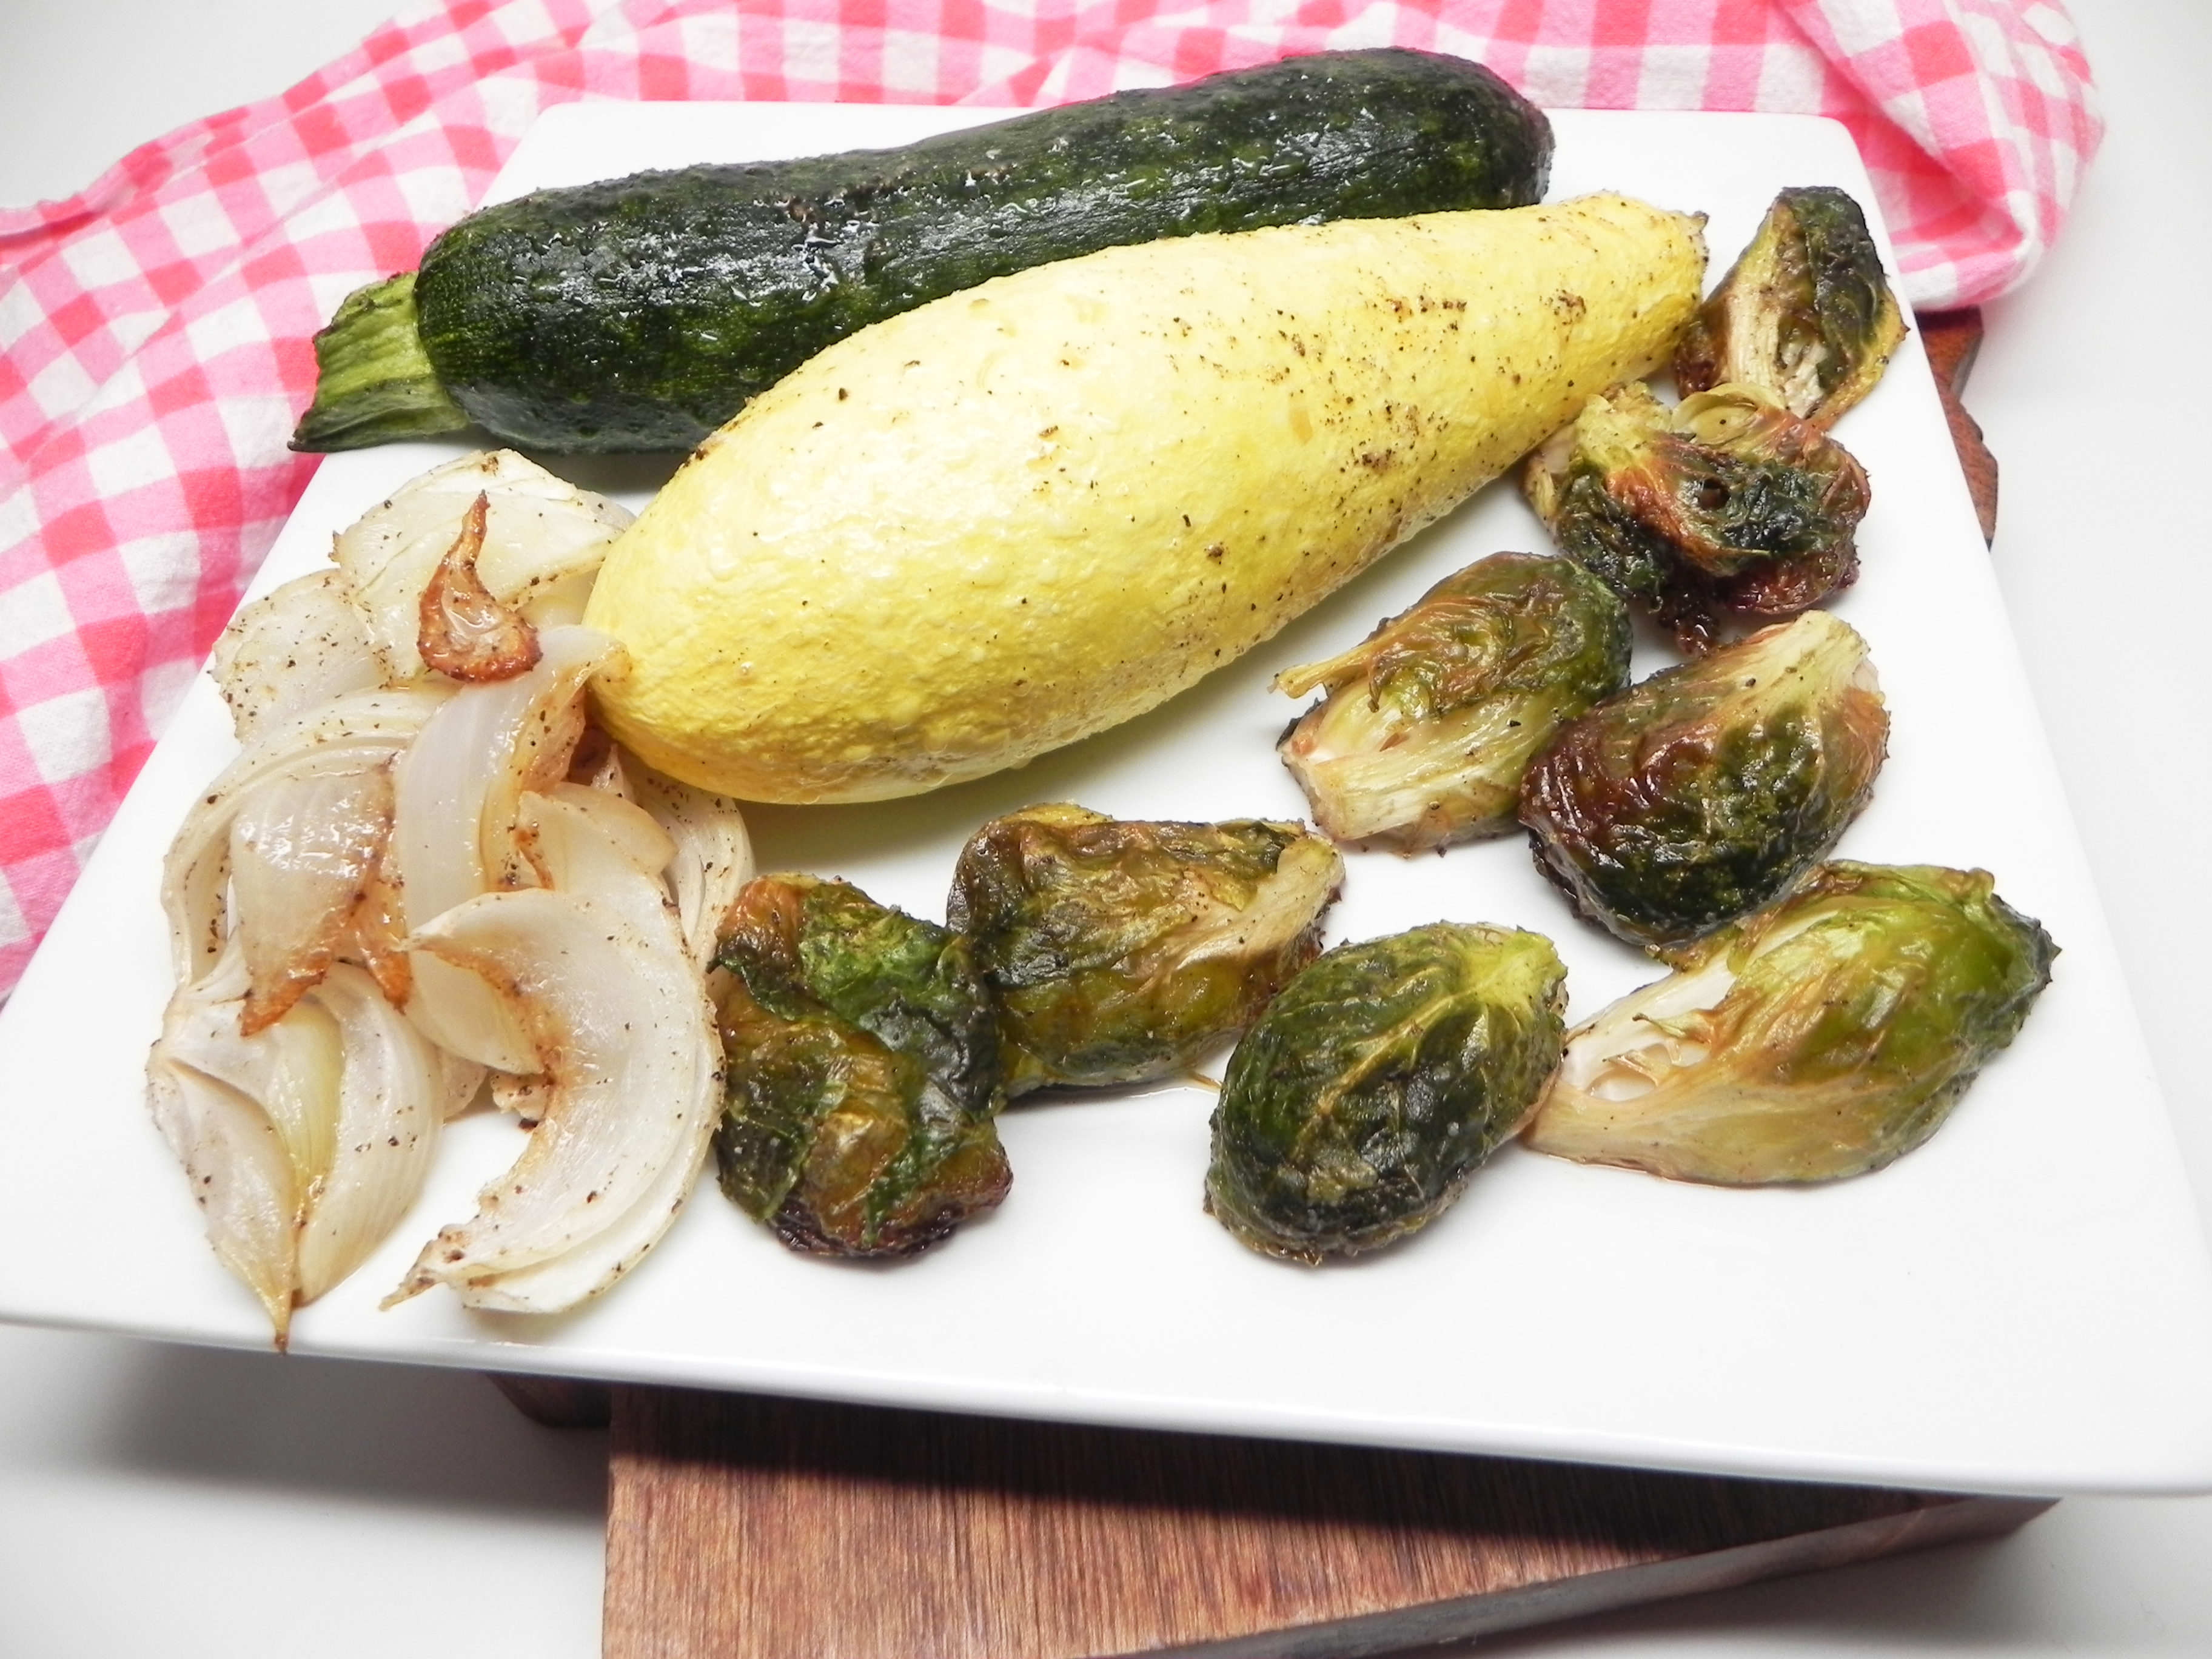 Roasted Summer Squash, Zucchini, and Brussels Sprouts